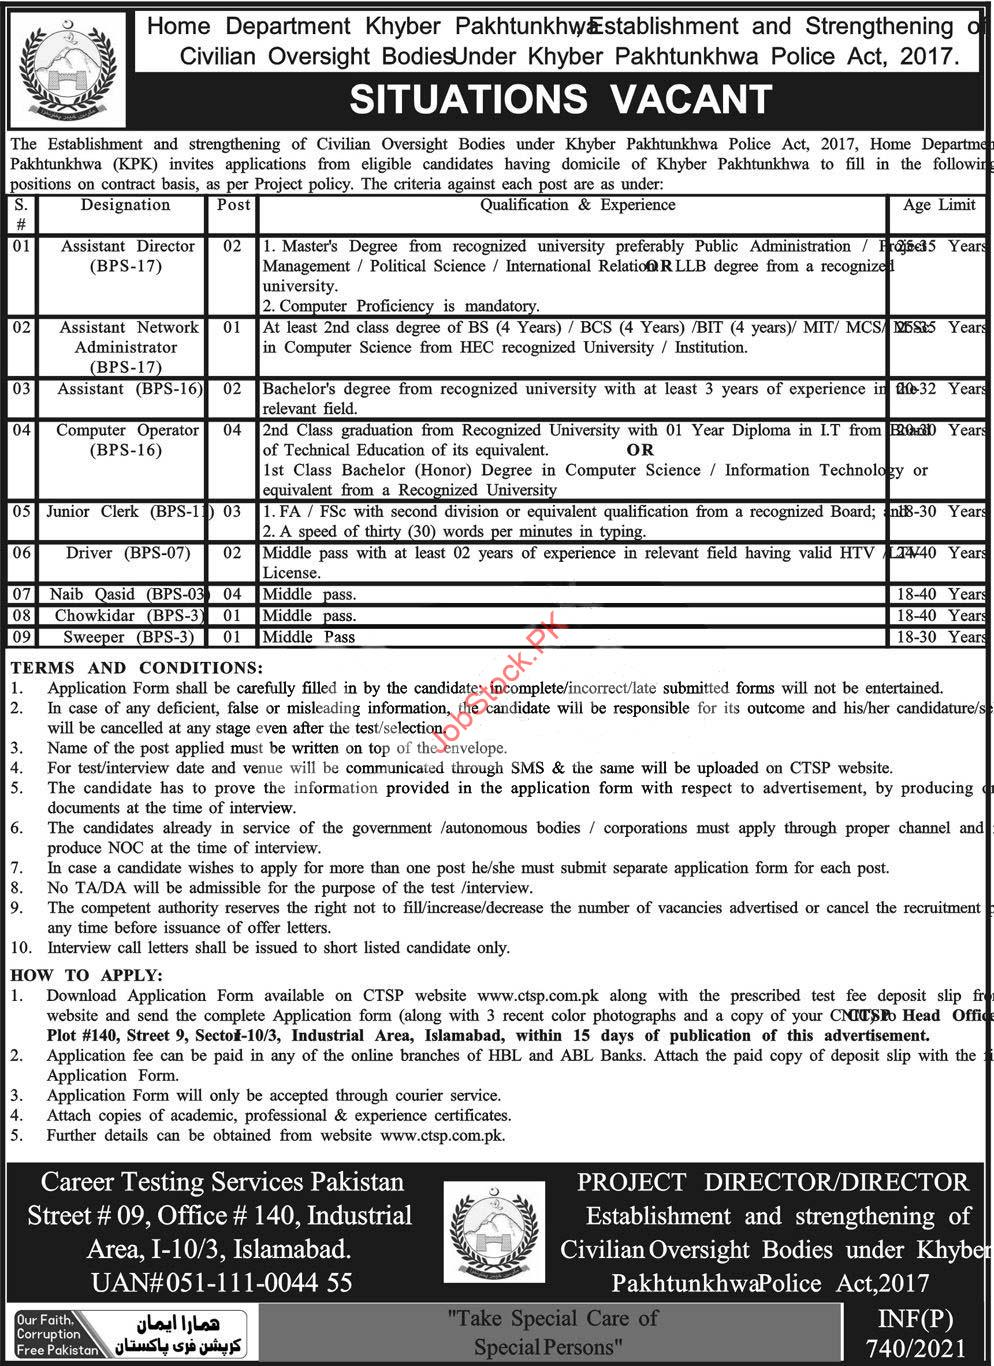 Home Department Peshawar Jobs 2021 Latest